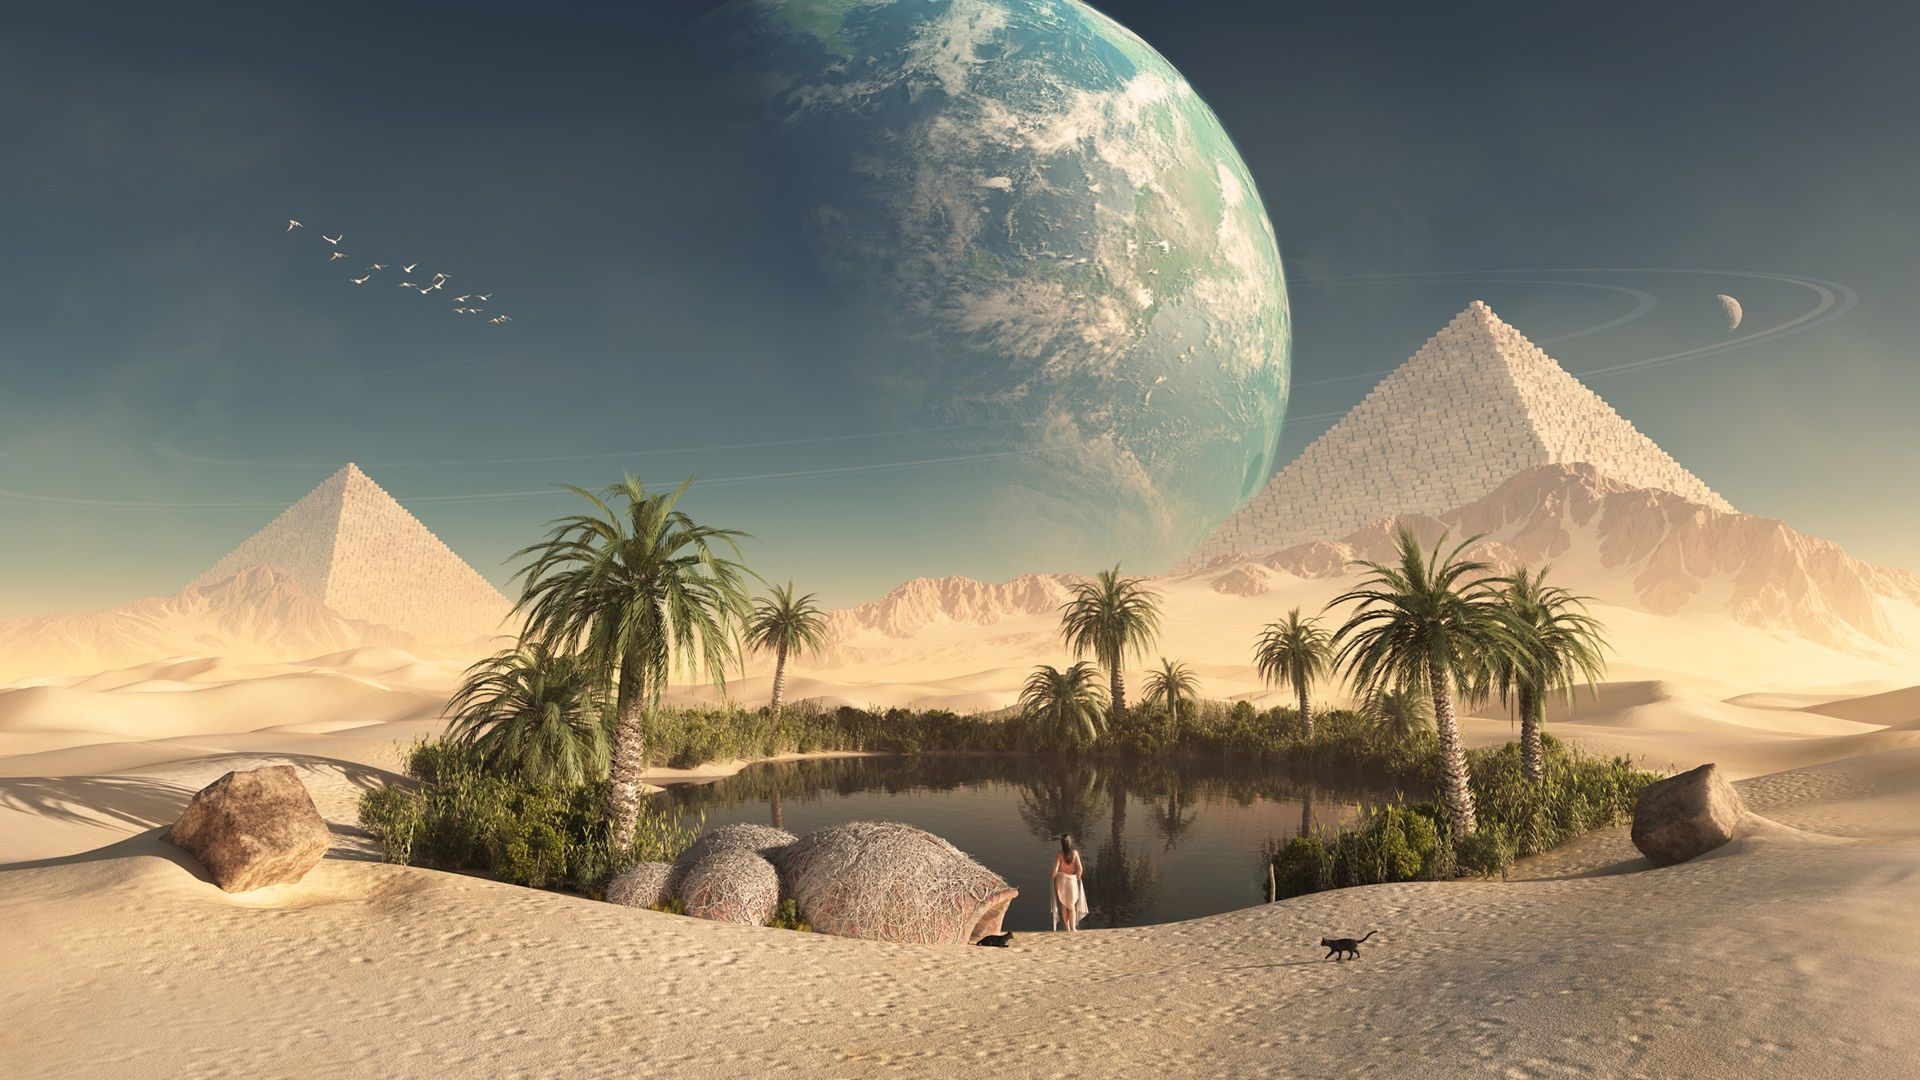 Amazing HD Desktop Wallpapers From Egypt